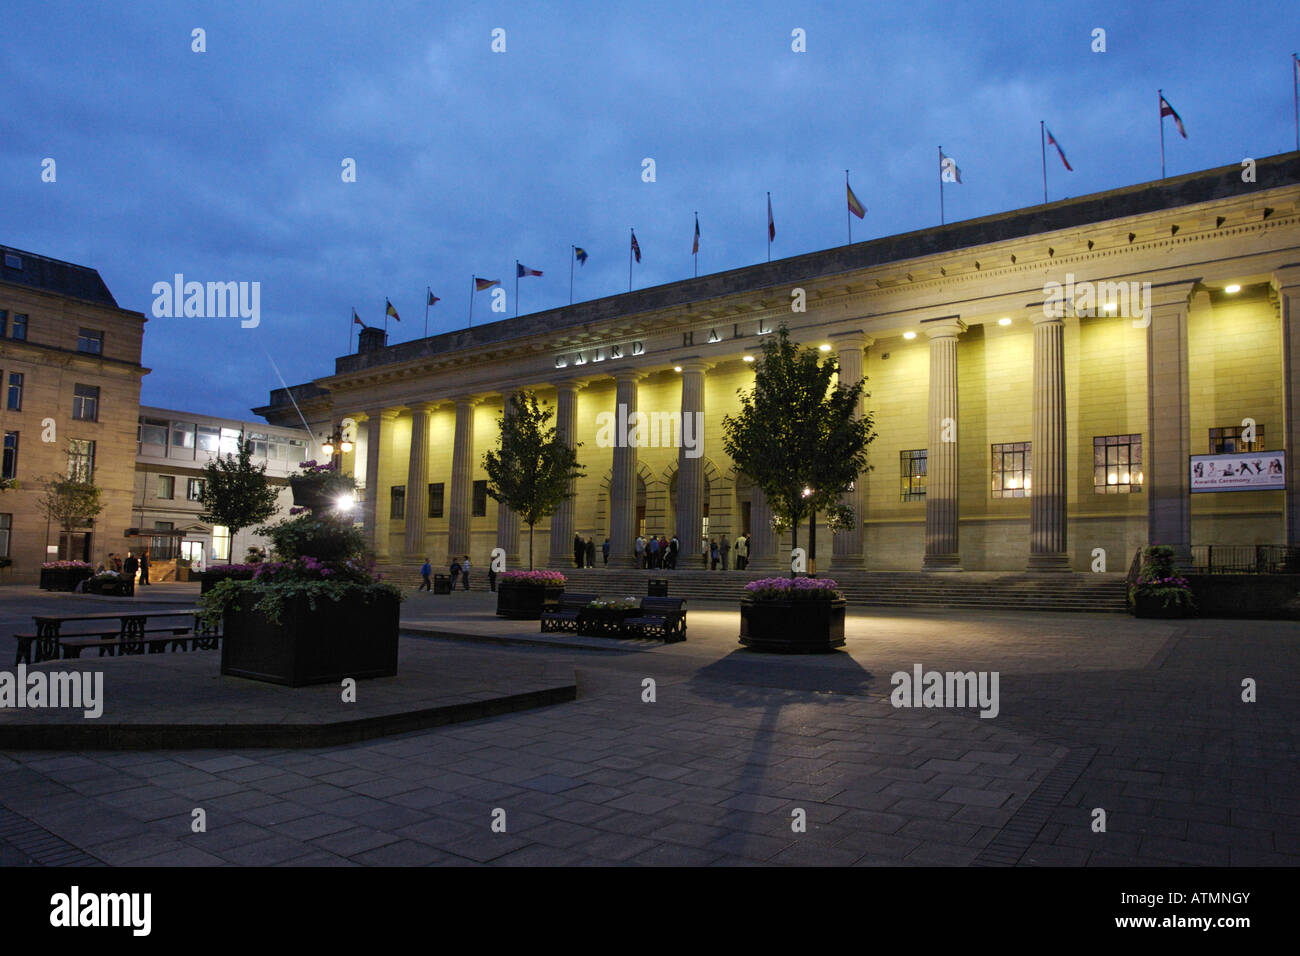 The Dundee Caird Hall at night - Stock Image